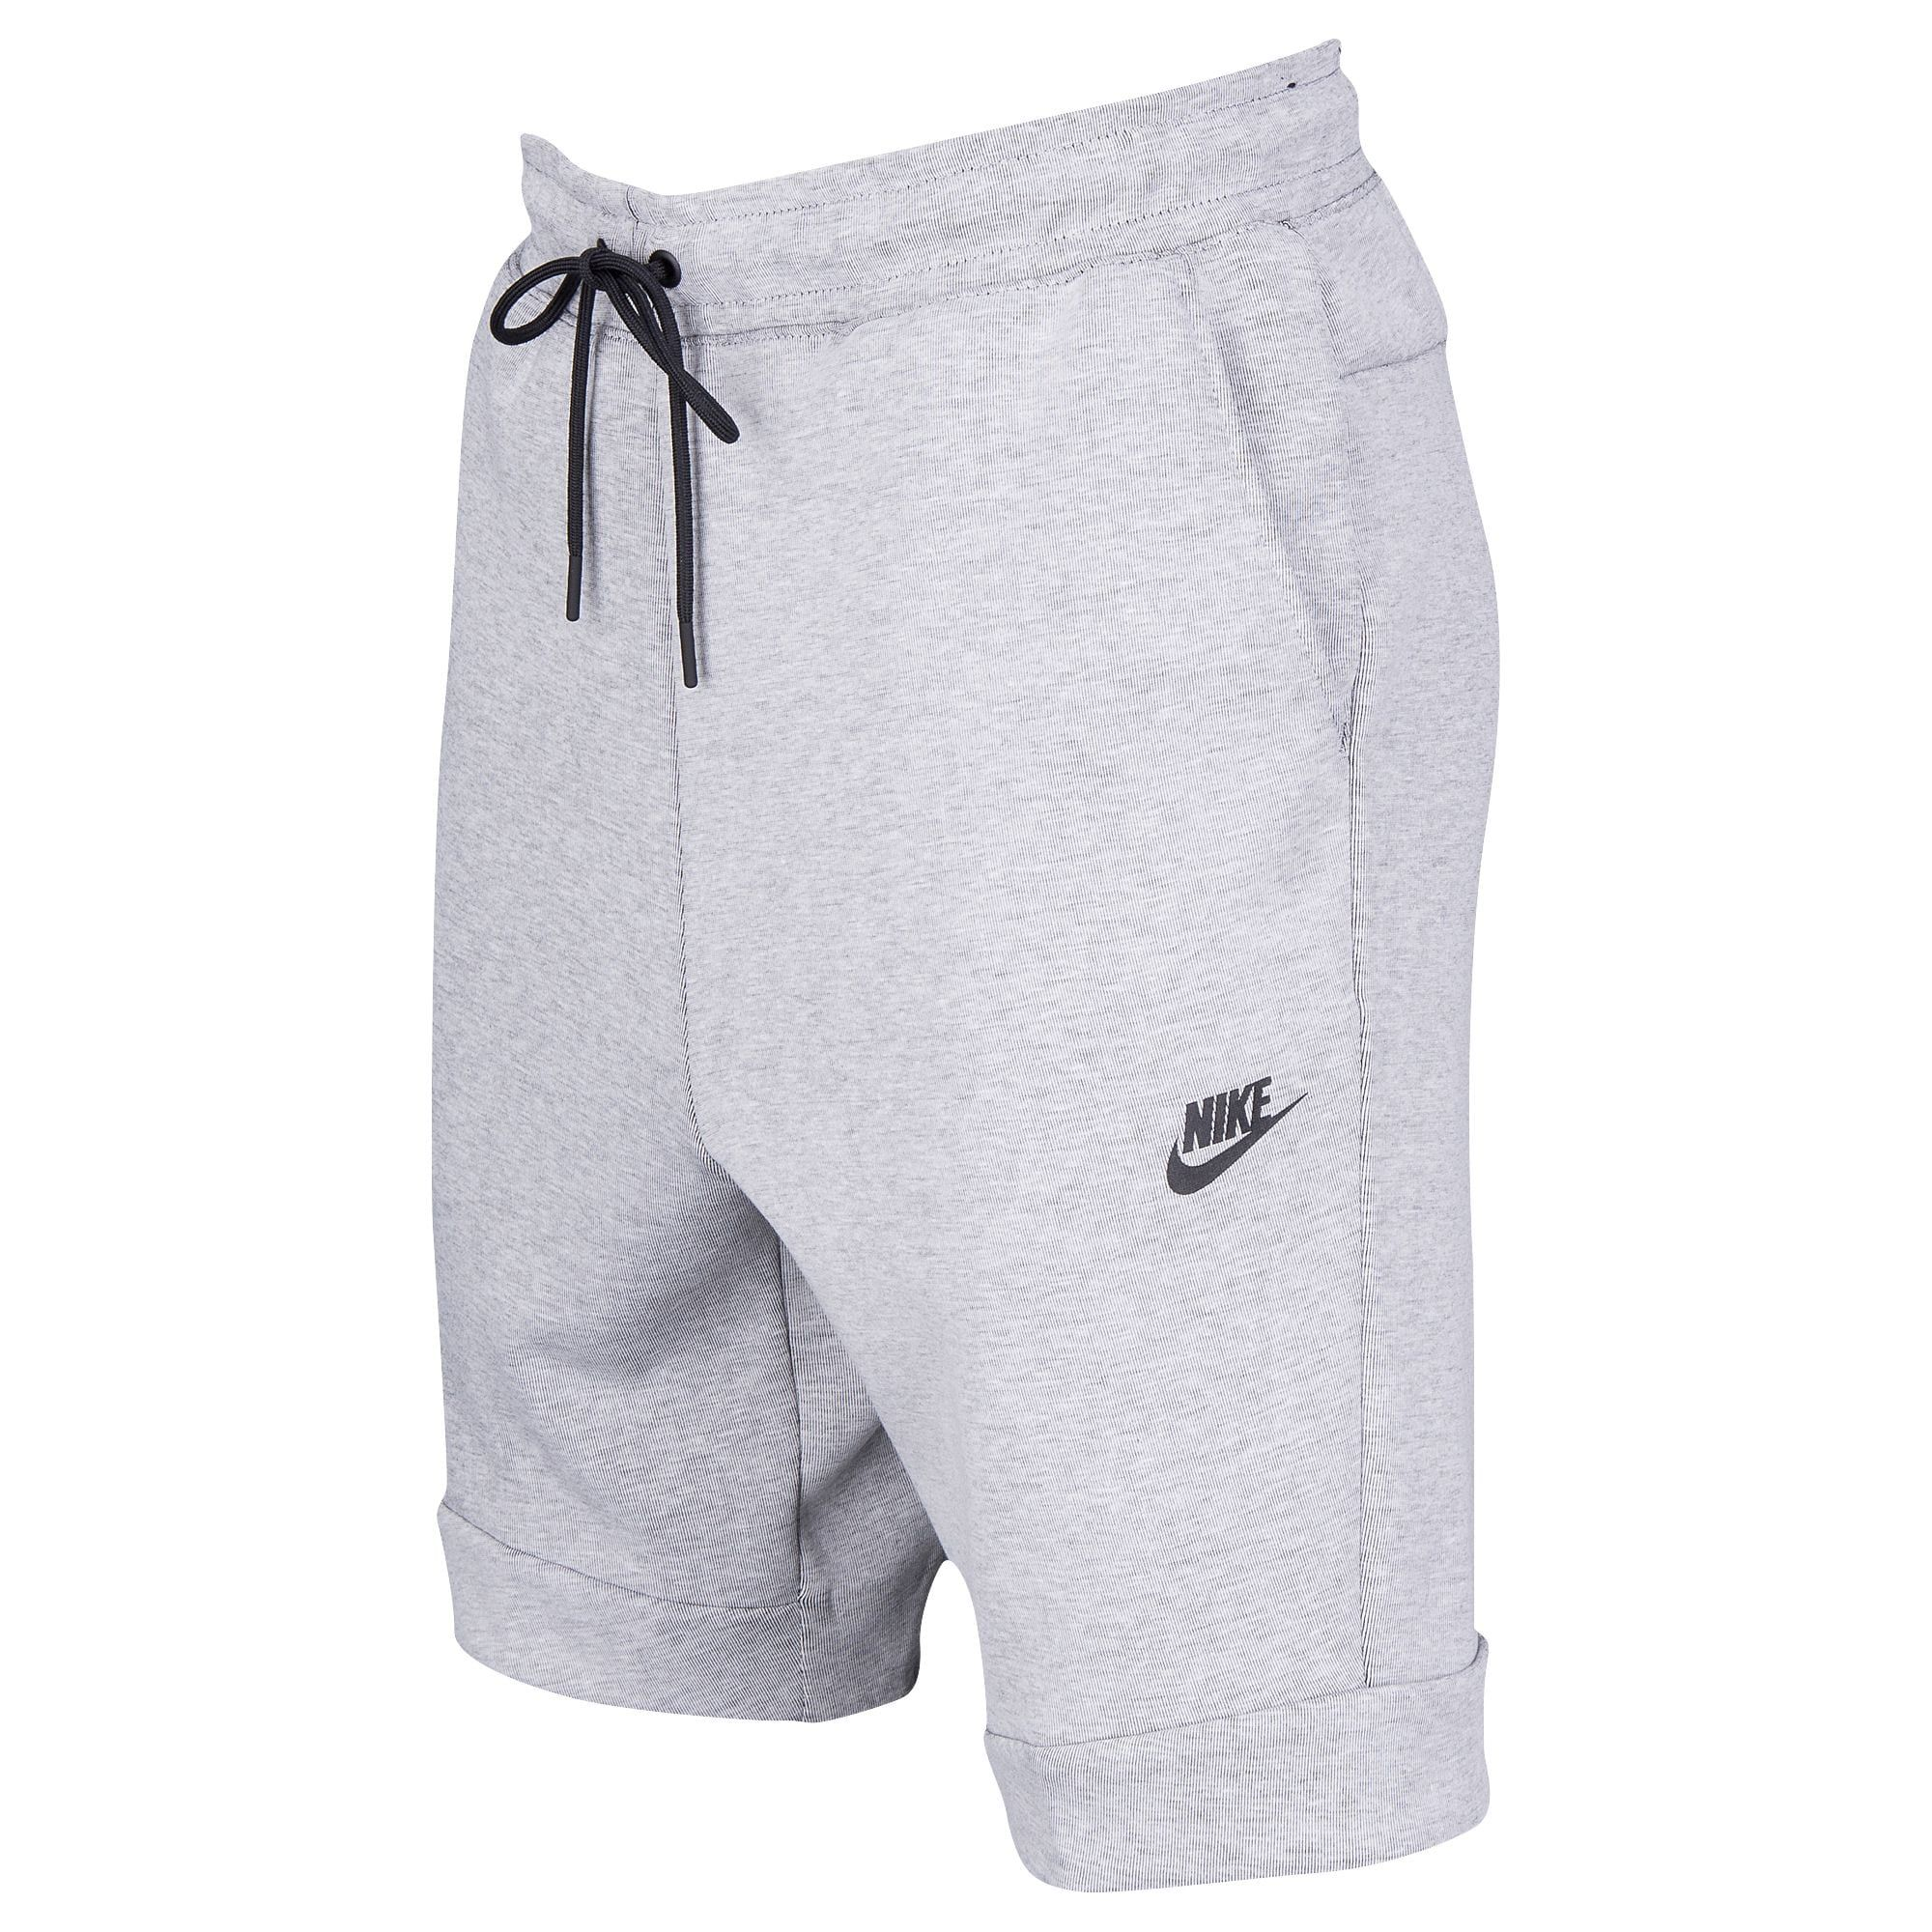 Nike Tech Fleece Shorts Men's Casual Clothing